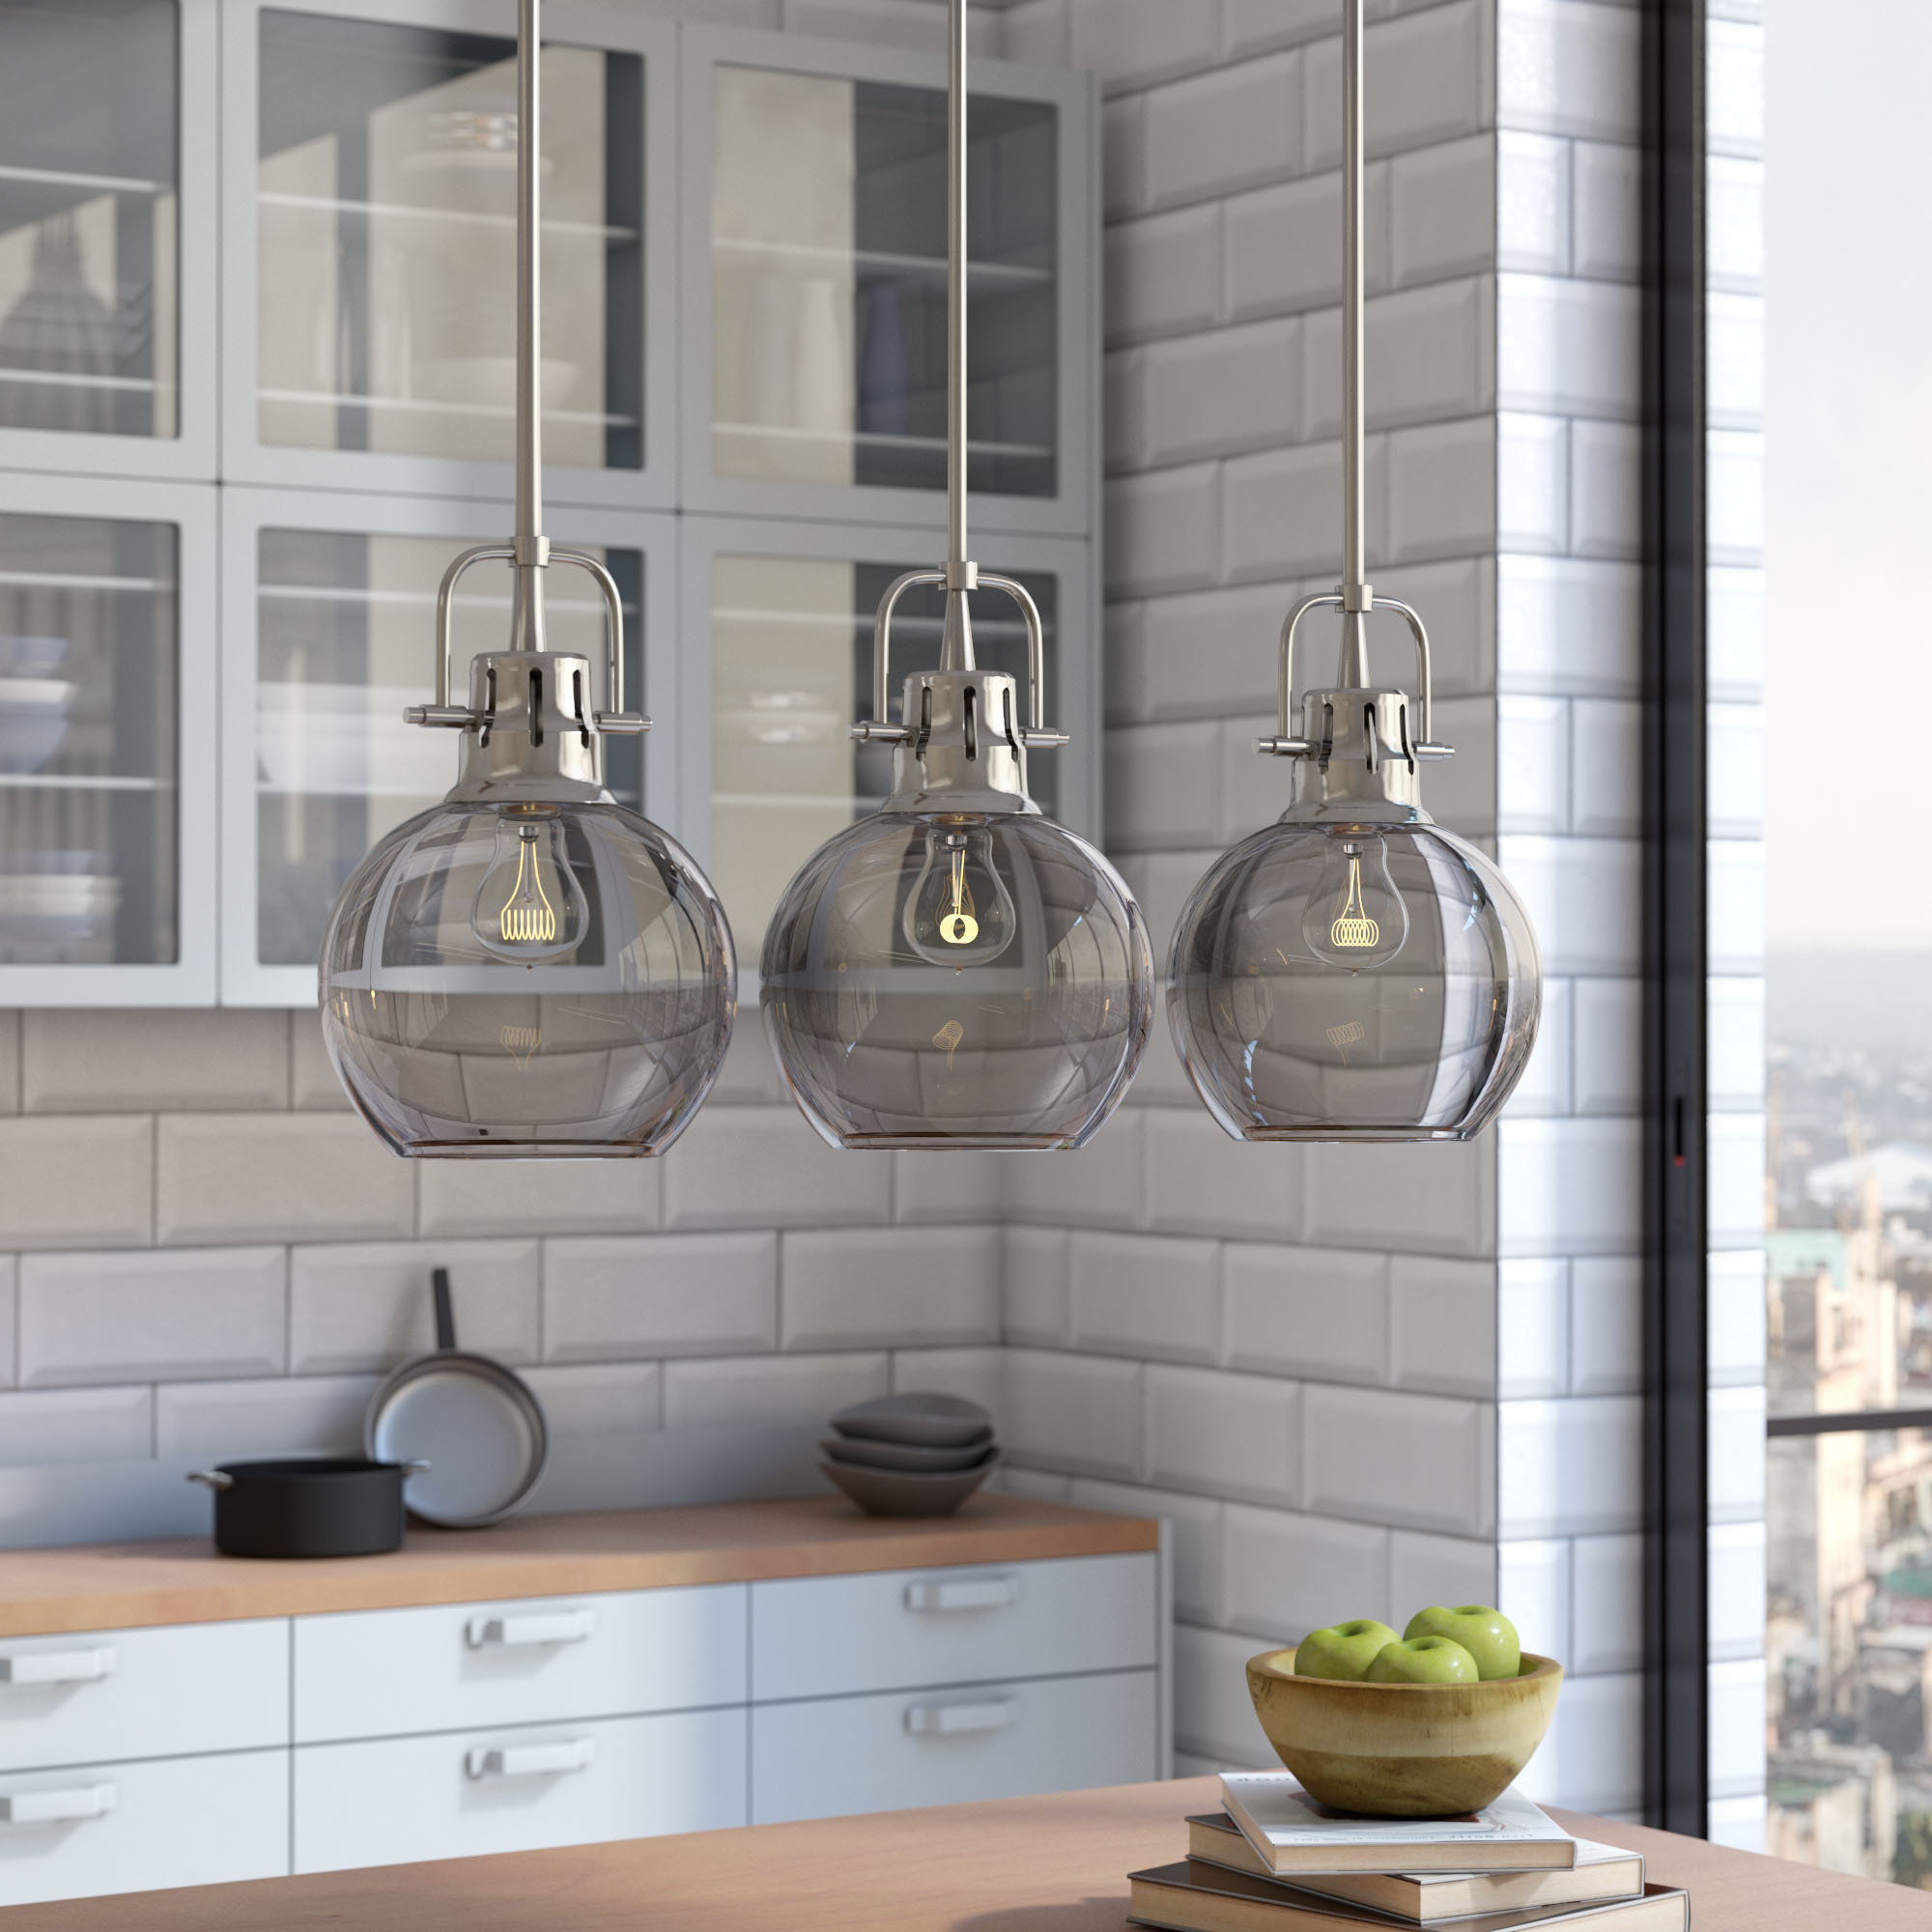 Hinerman 5 Light Kitchen Island Pendants In Widely Used Gold Kitchen Lighting (Gallery 25 of 25)